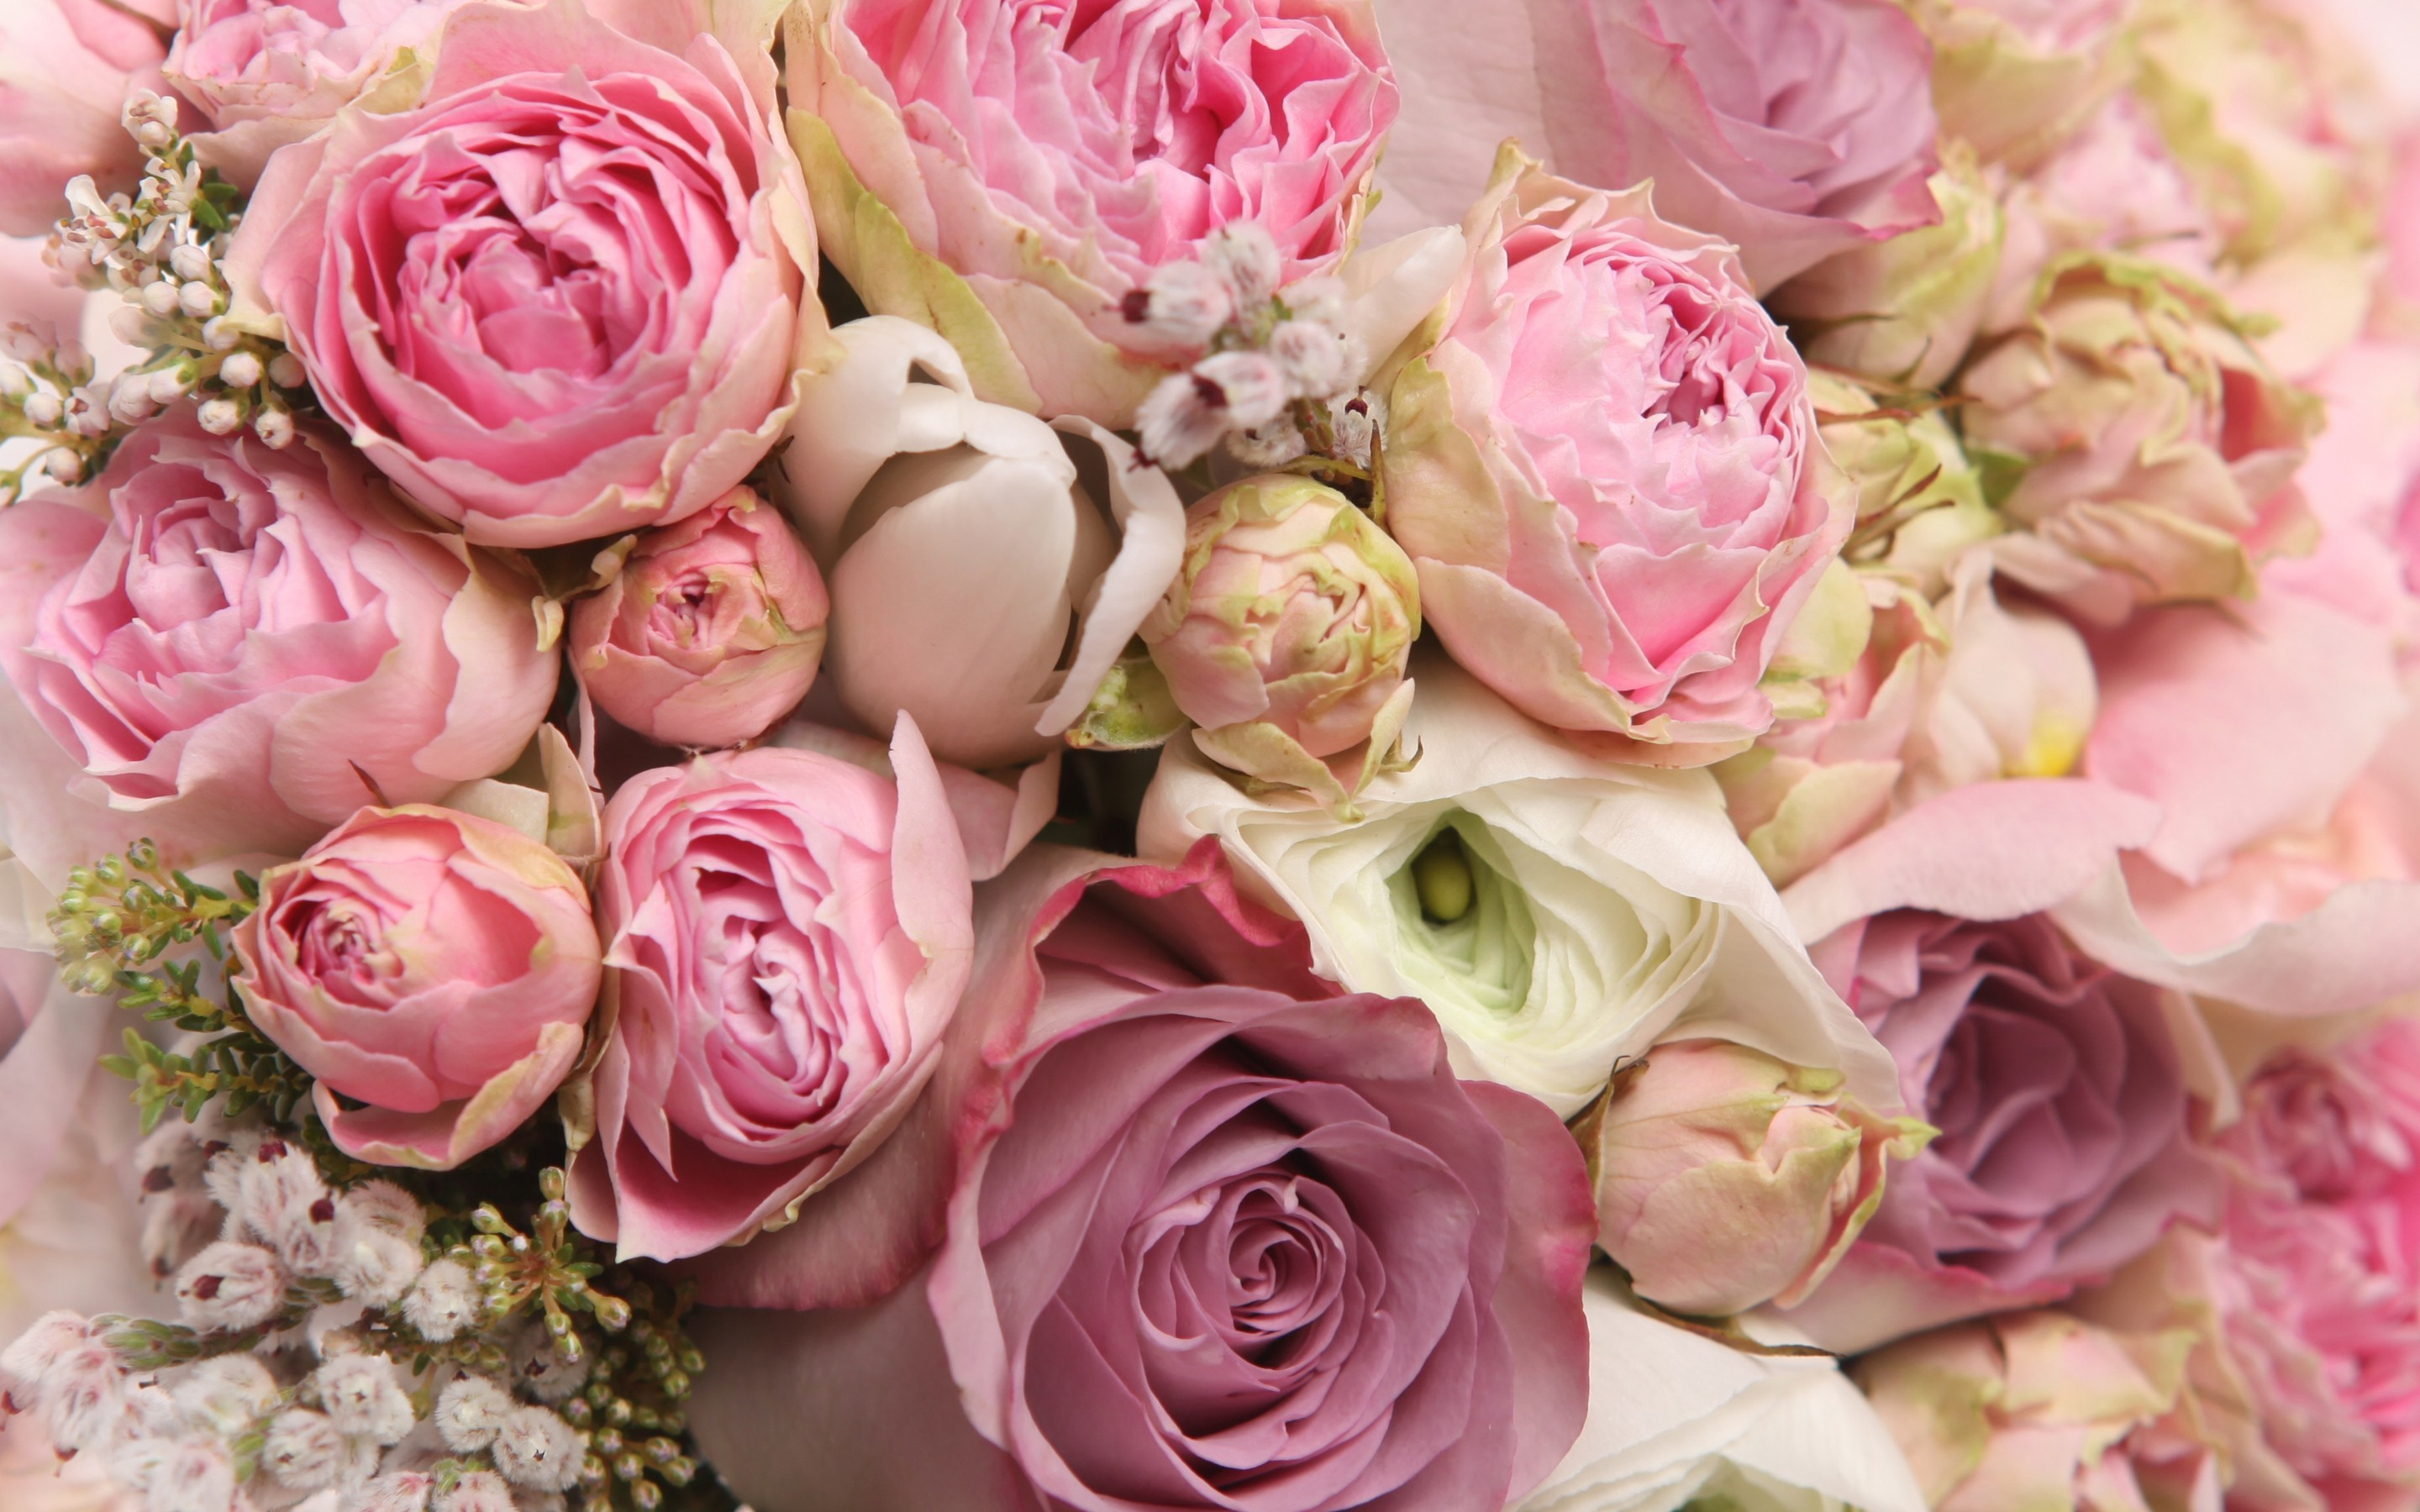 Rose Flowers Background (51+ images)